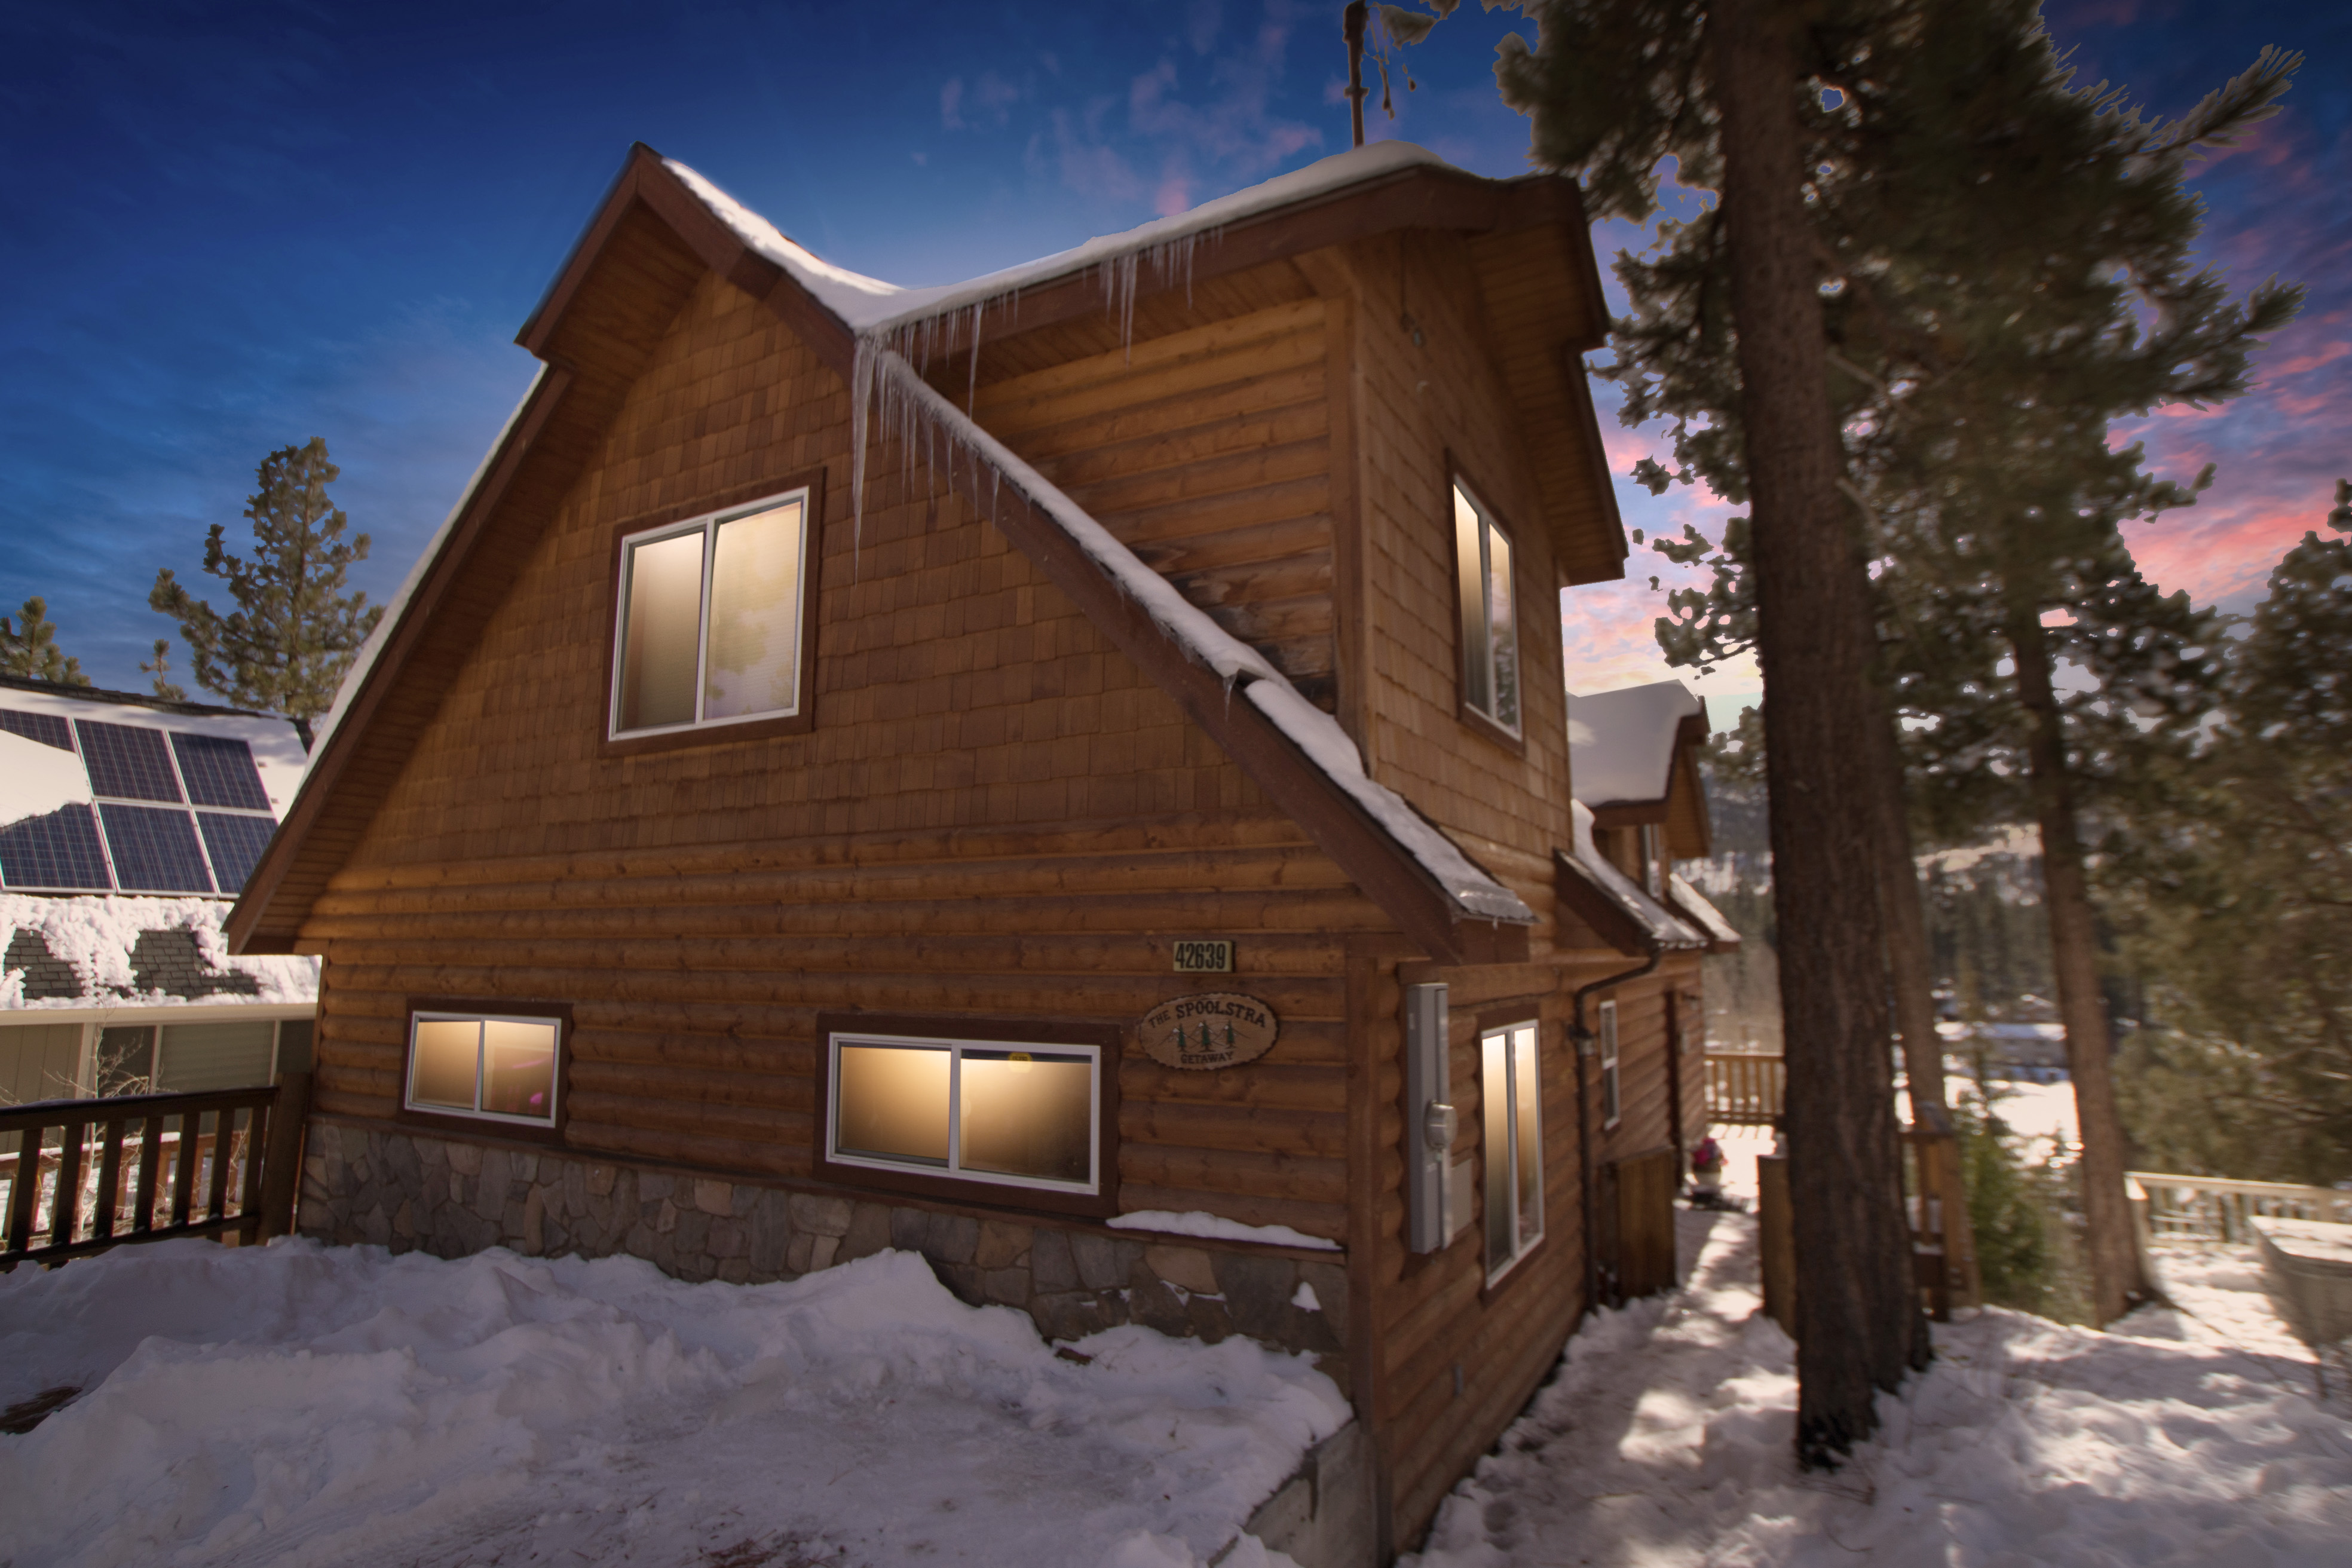 village prices the bear lake rental near deals rentals cabin big rent cheap for cabins